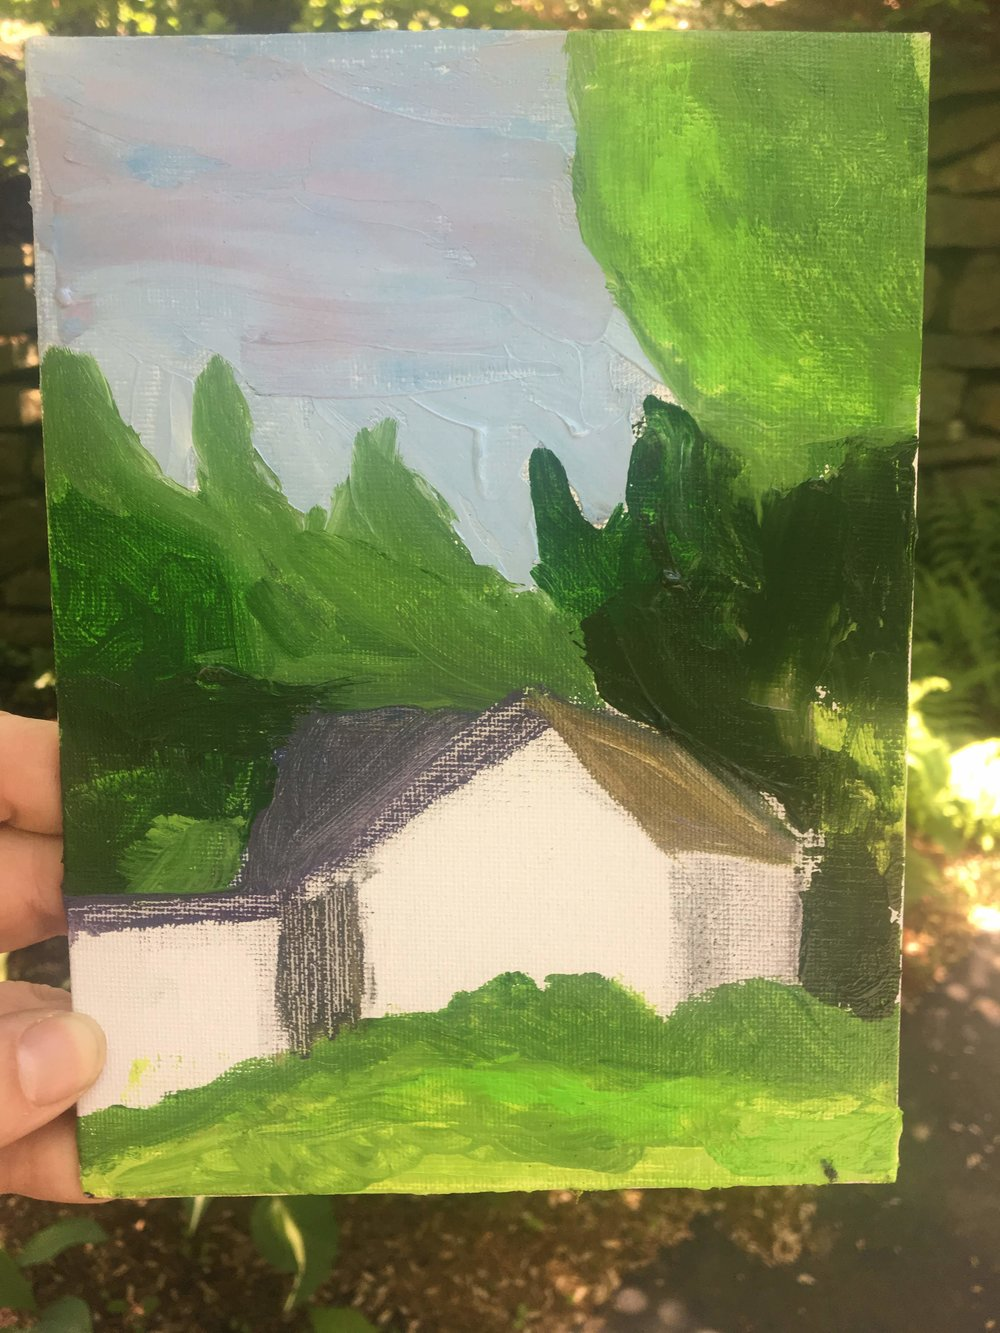 painting from my second class, house in center unfinished